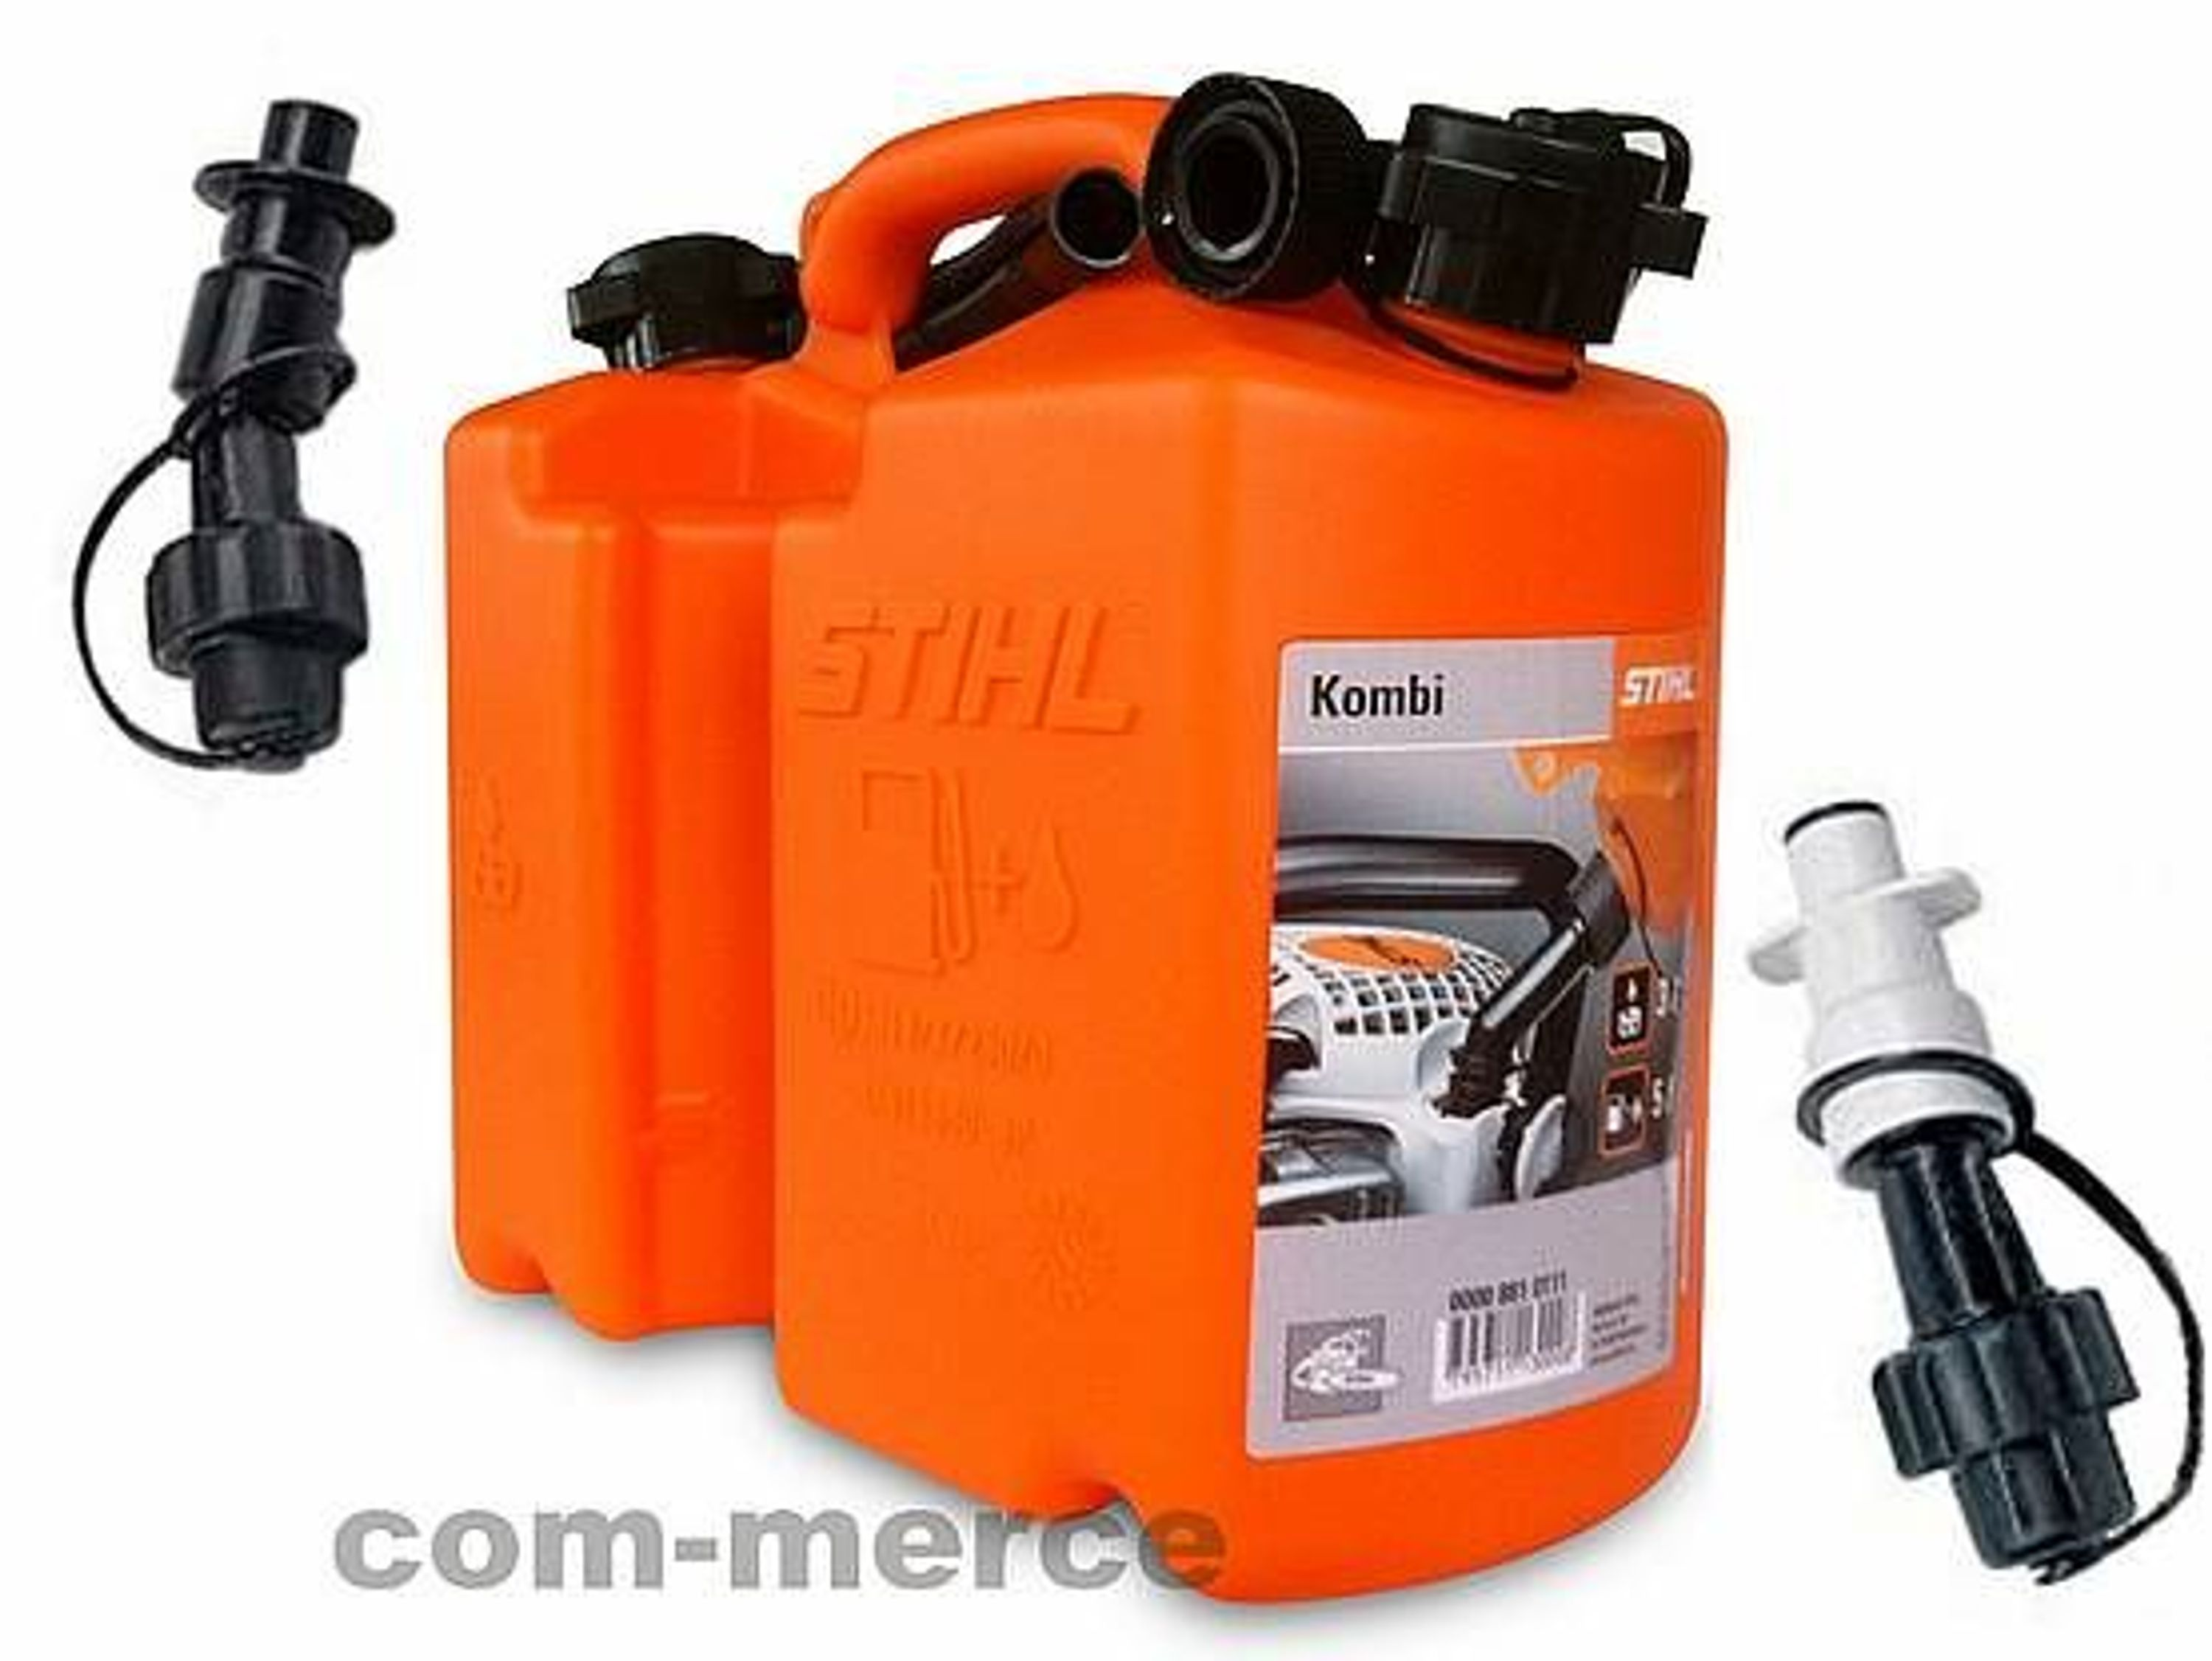 stihl kombi kanister mit einf llsystem f r benzin l kaufen bei. Black Bedroom Furniture Sets. Home Design Ideas